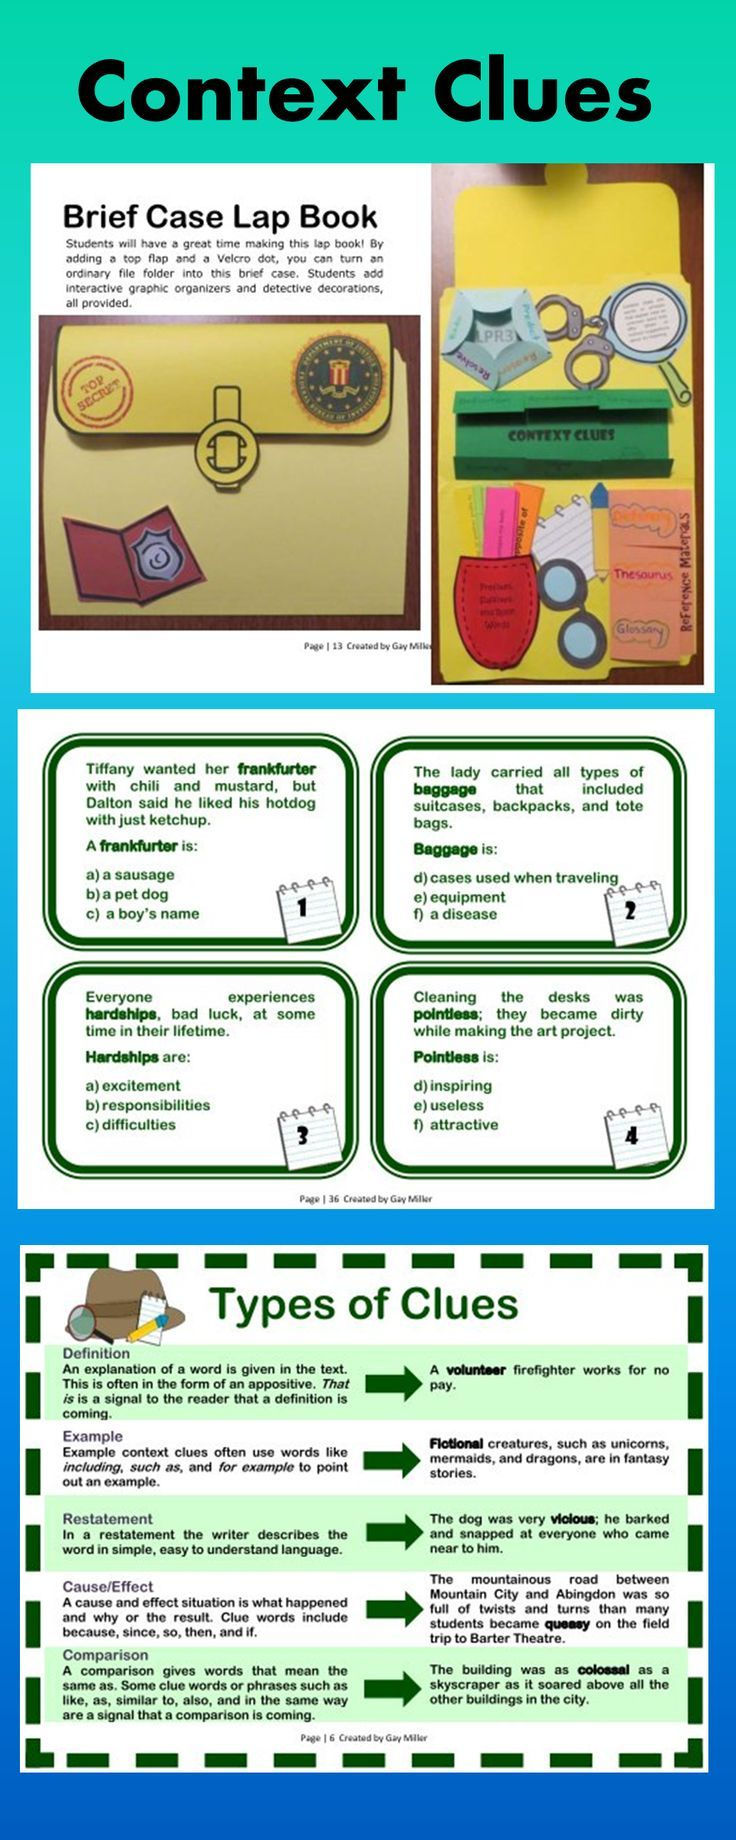 Worksheet 5 Context Clues 1000 images about context clues on pinterest examples figurative language and activity